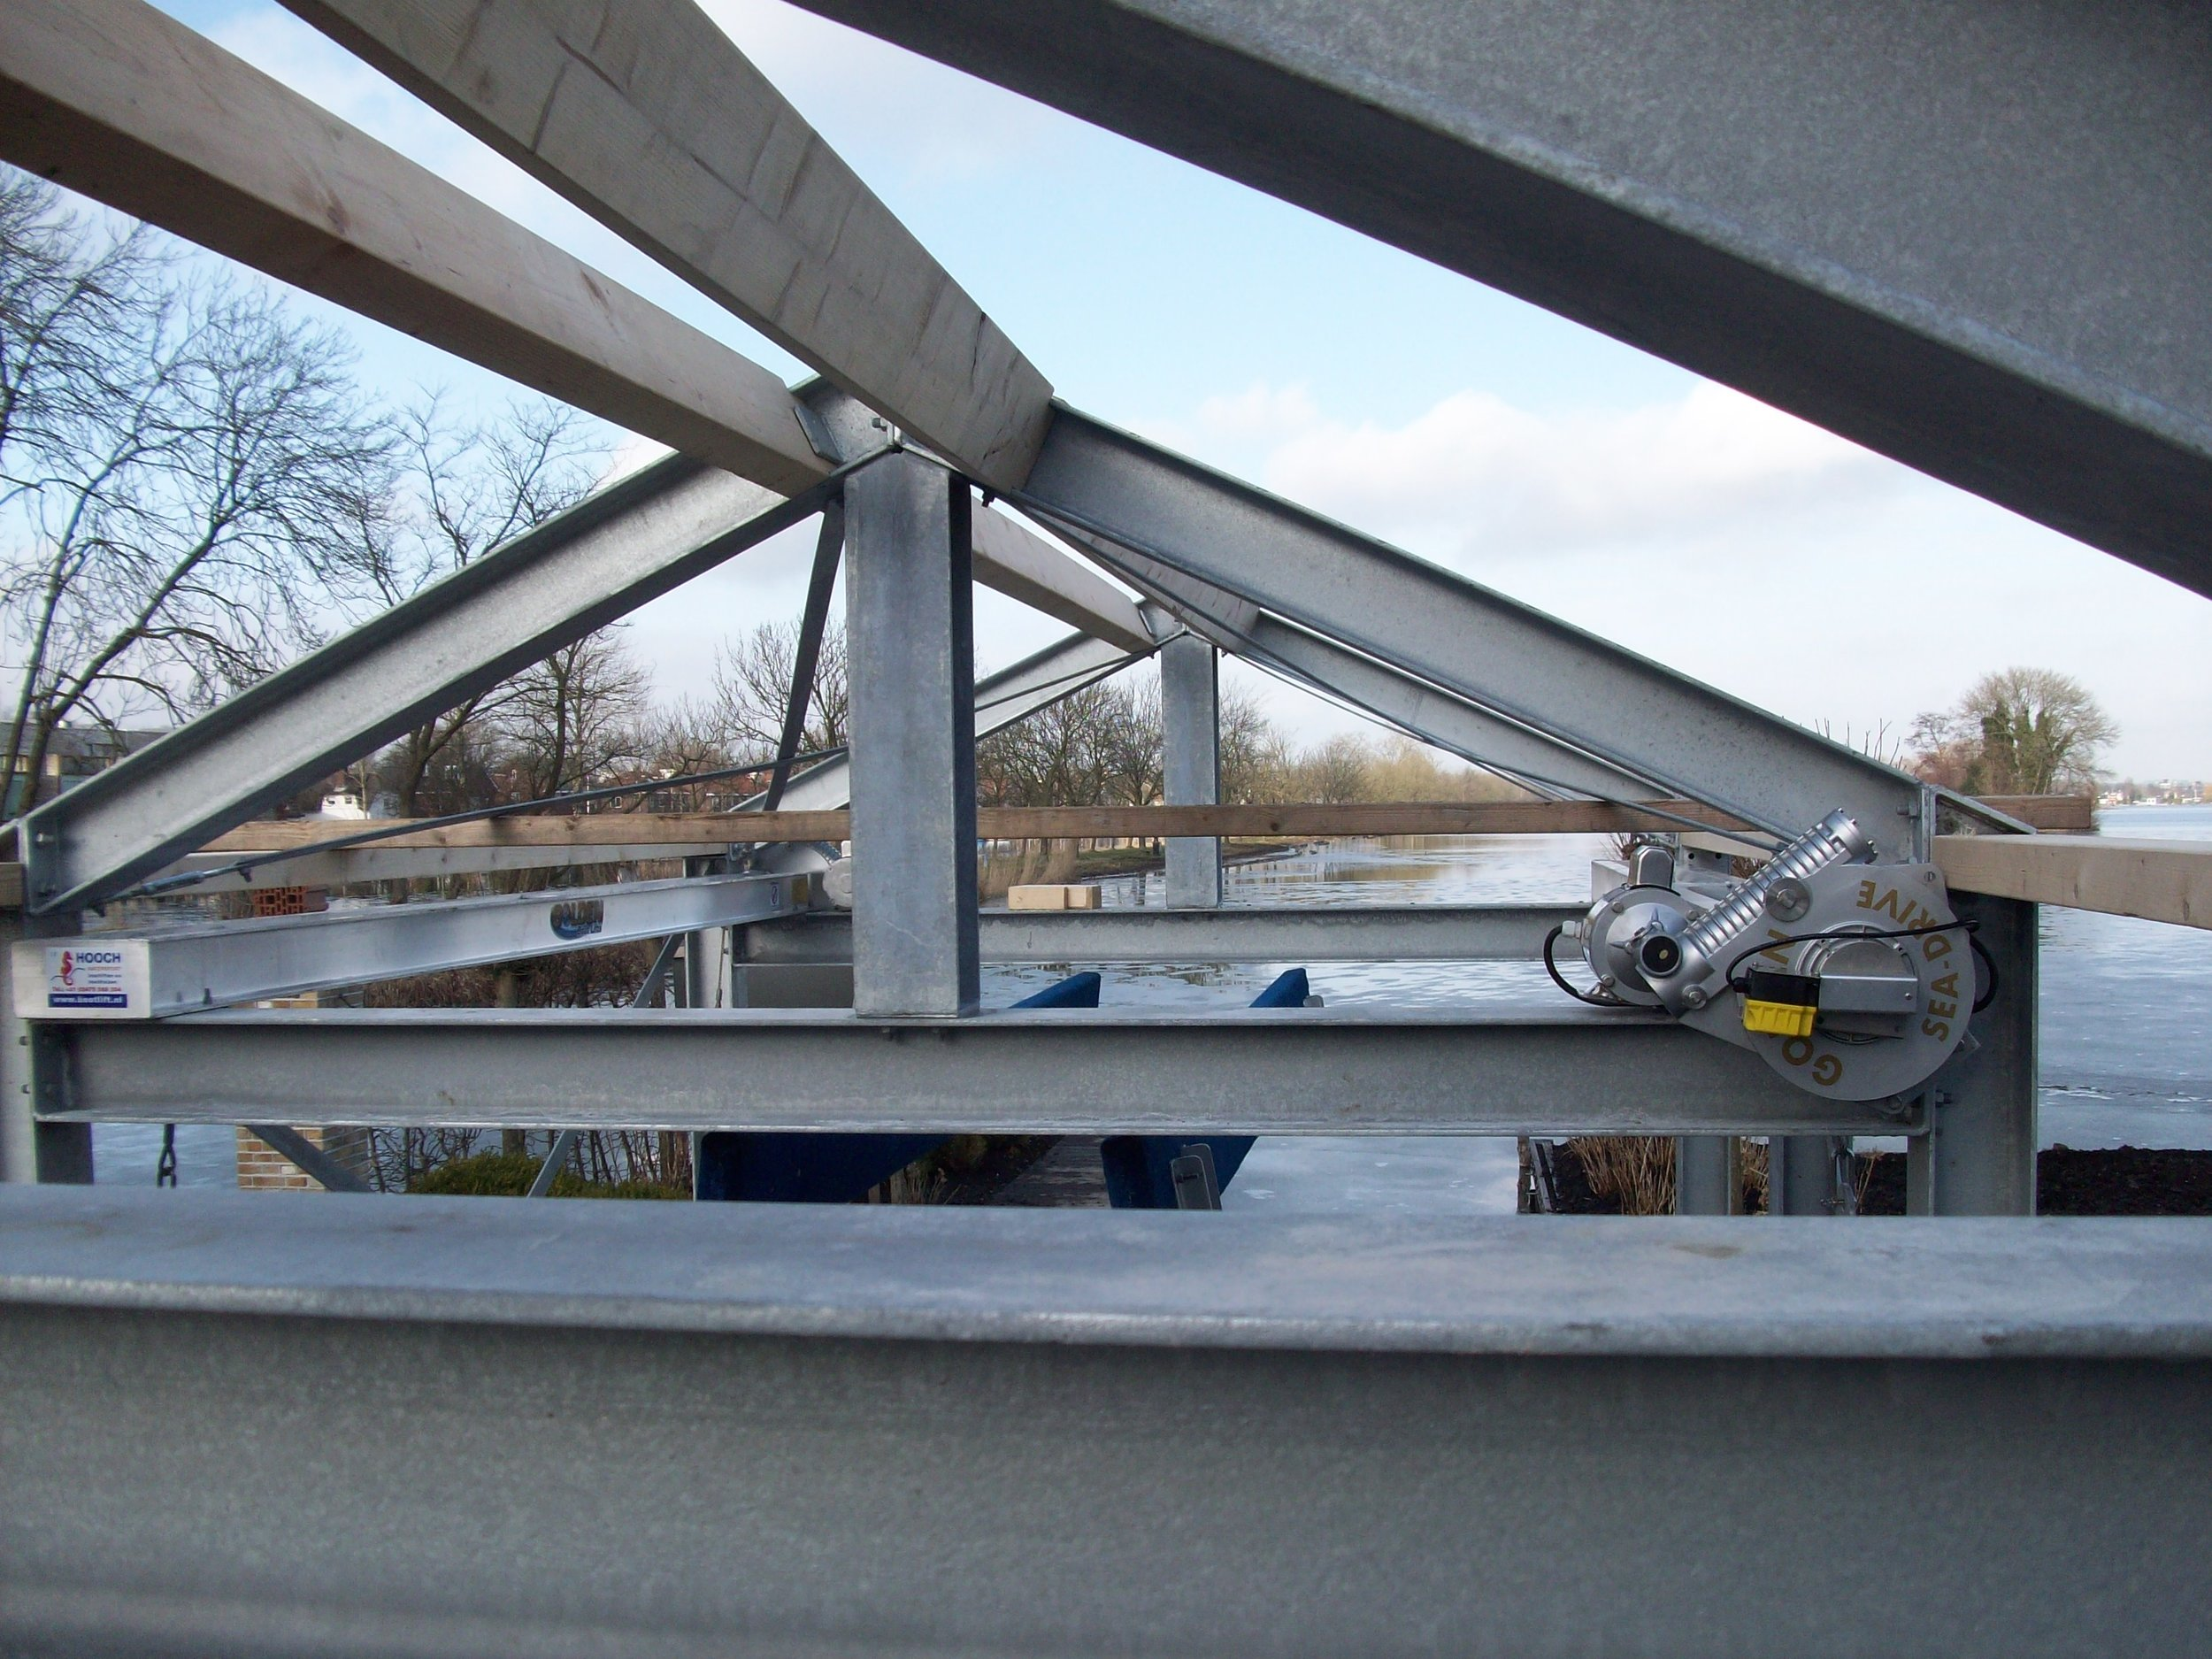 4-post sea-drive boatlift installed in the structure of a boathouse.